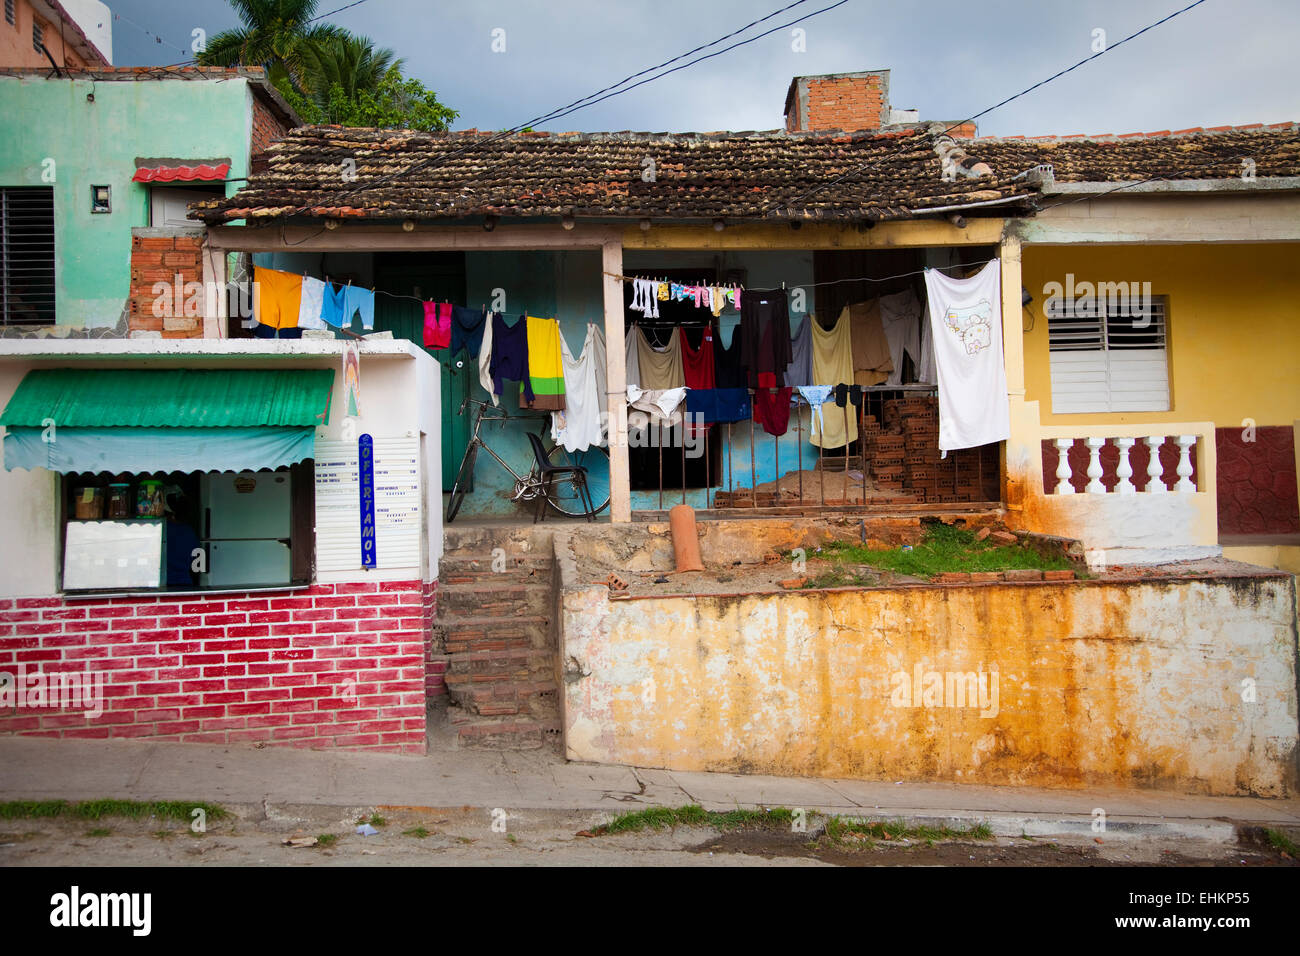 Cuban Housing Photos  Cuban Housing Images  Alamy